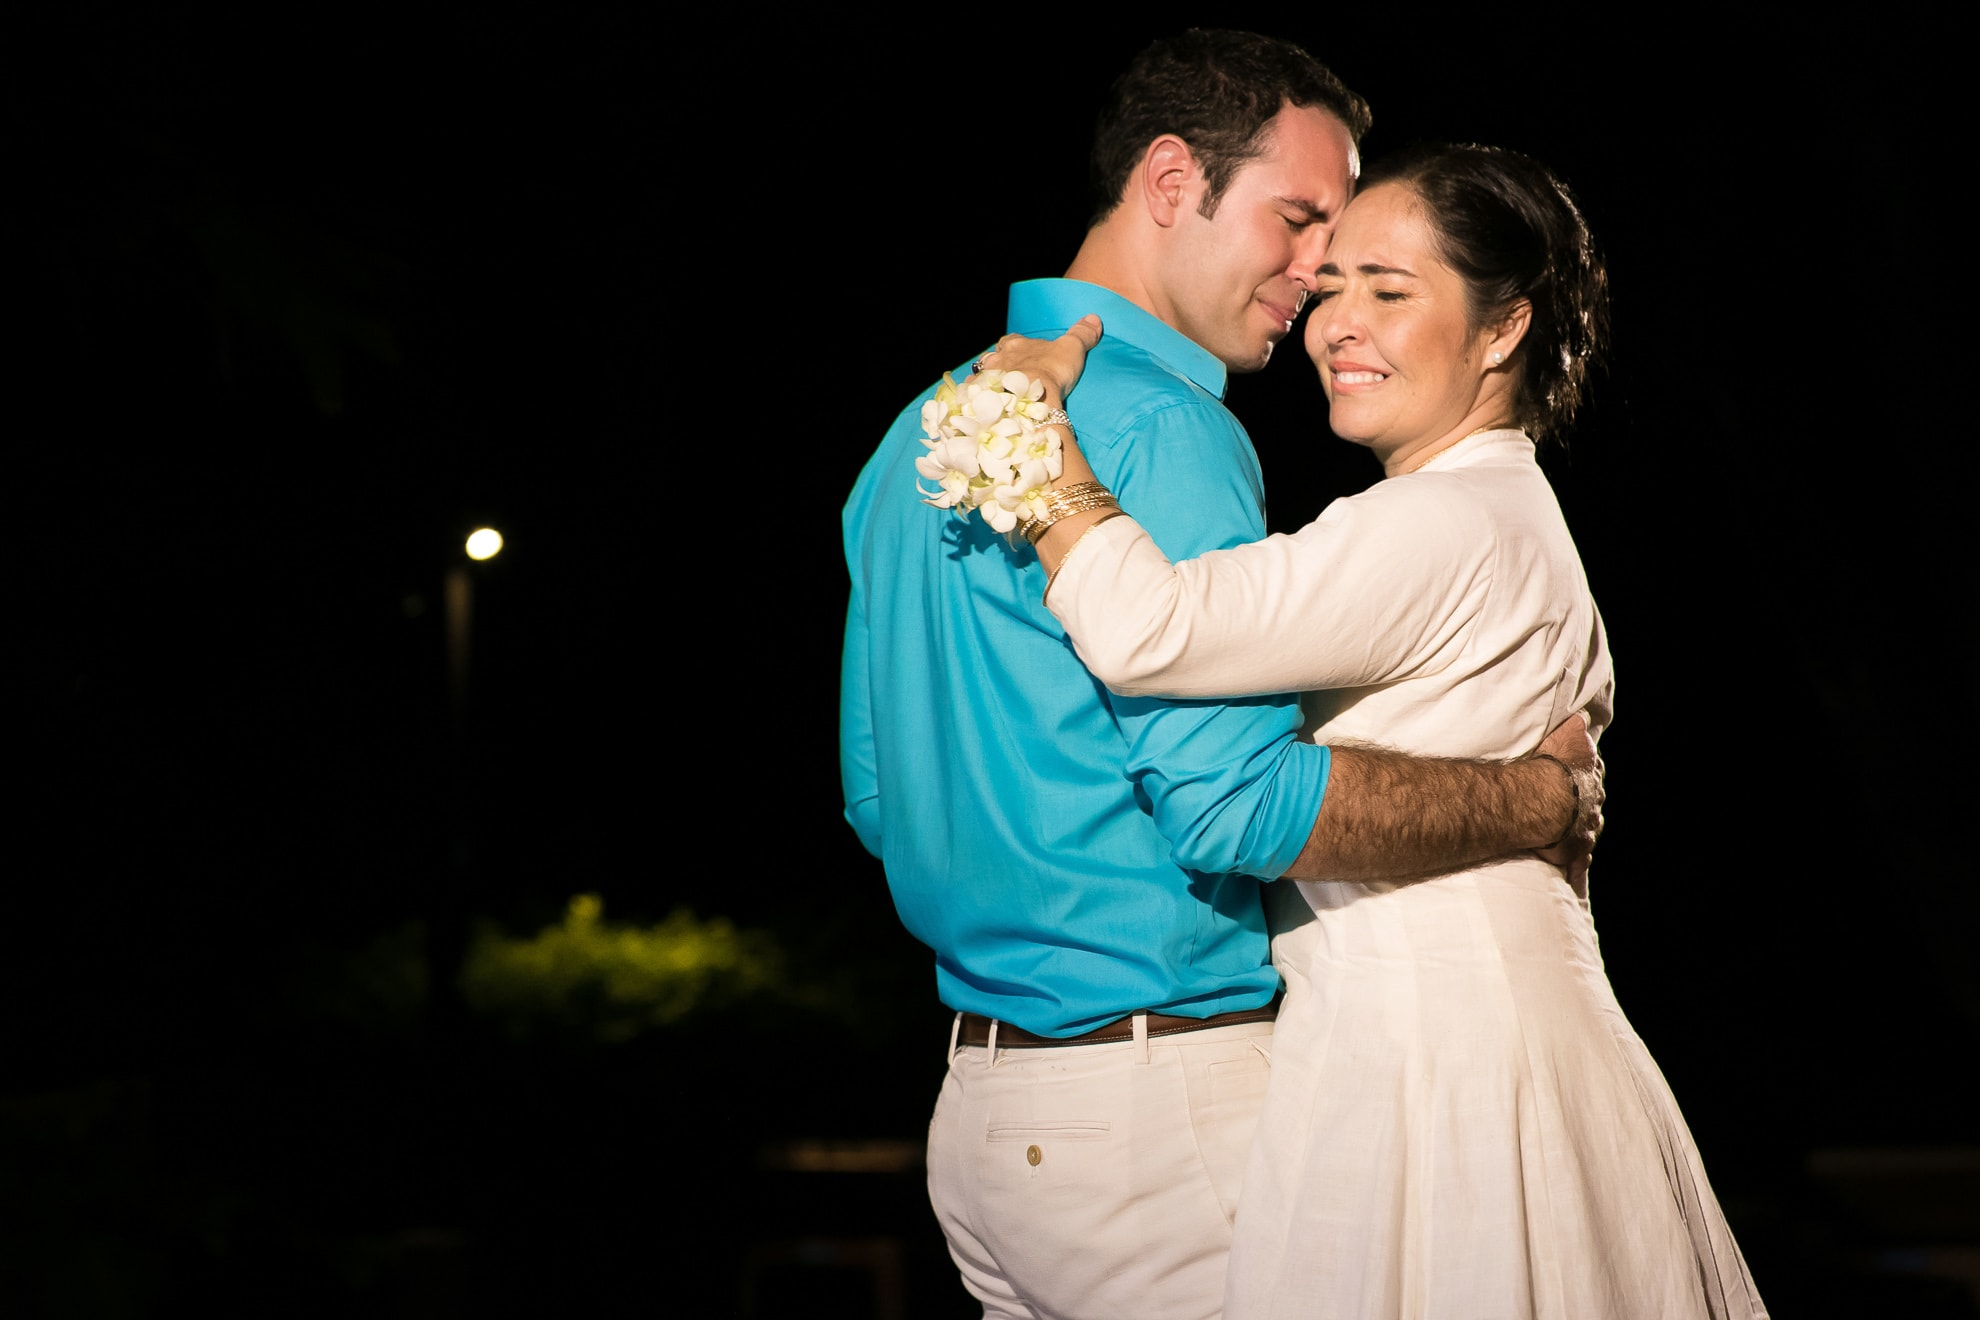 Groom dances with mother at wedding in Costa Rica.